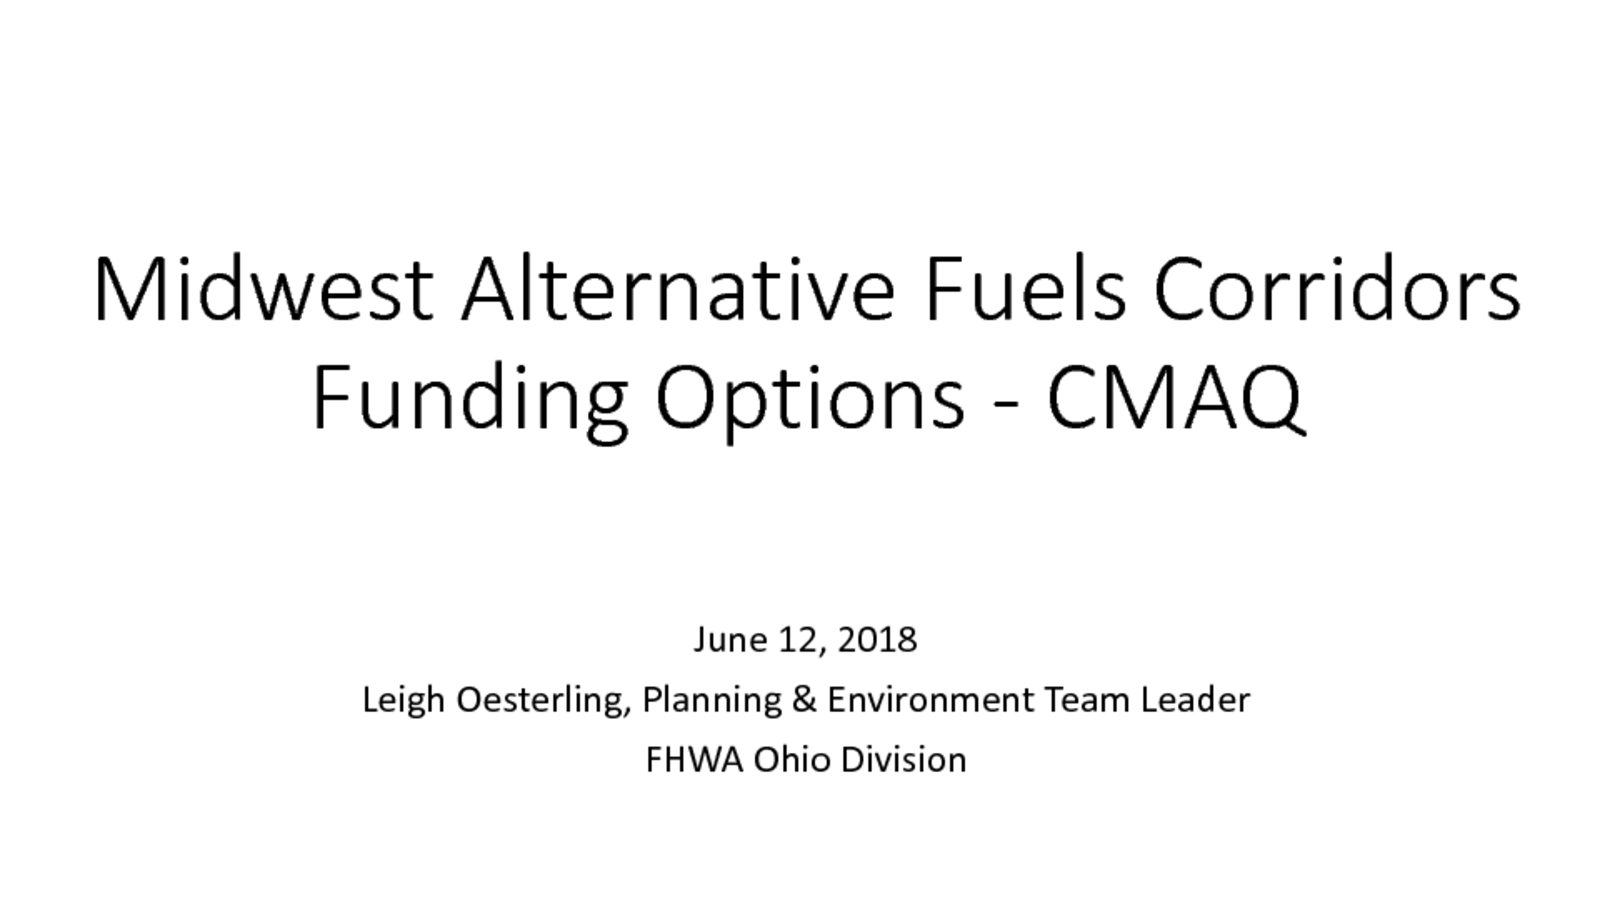 thumbnail of 2 – 2018 06 12 Midwest Alt Fuels Corridor_FHWA OH